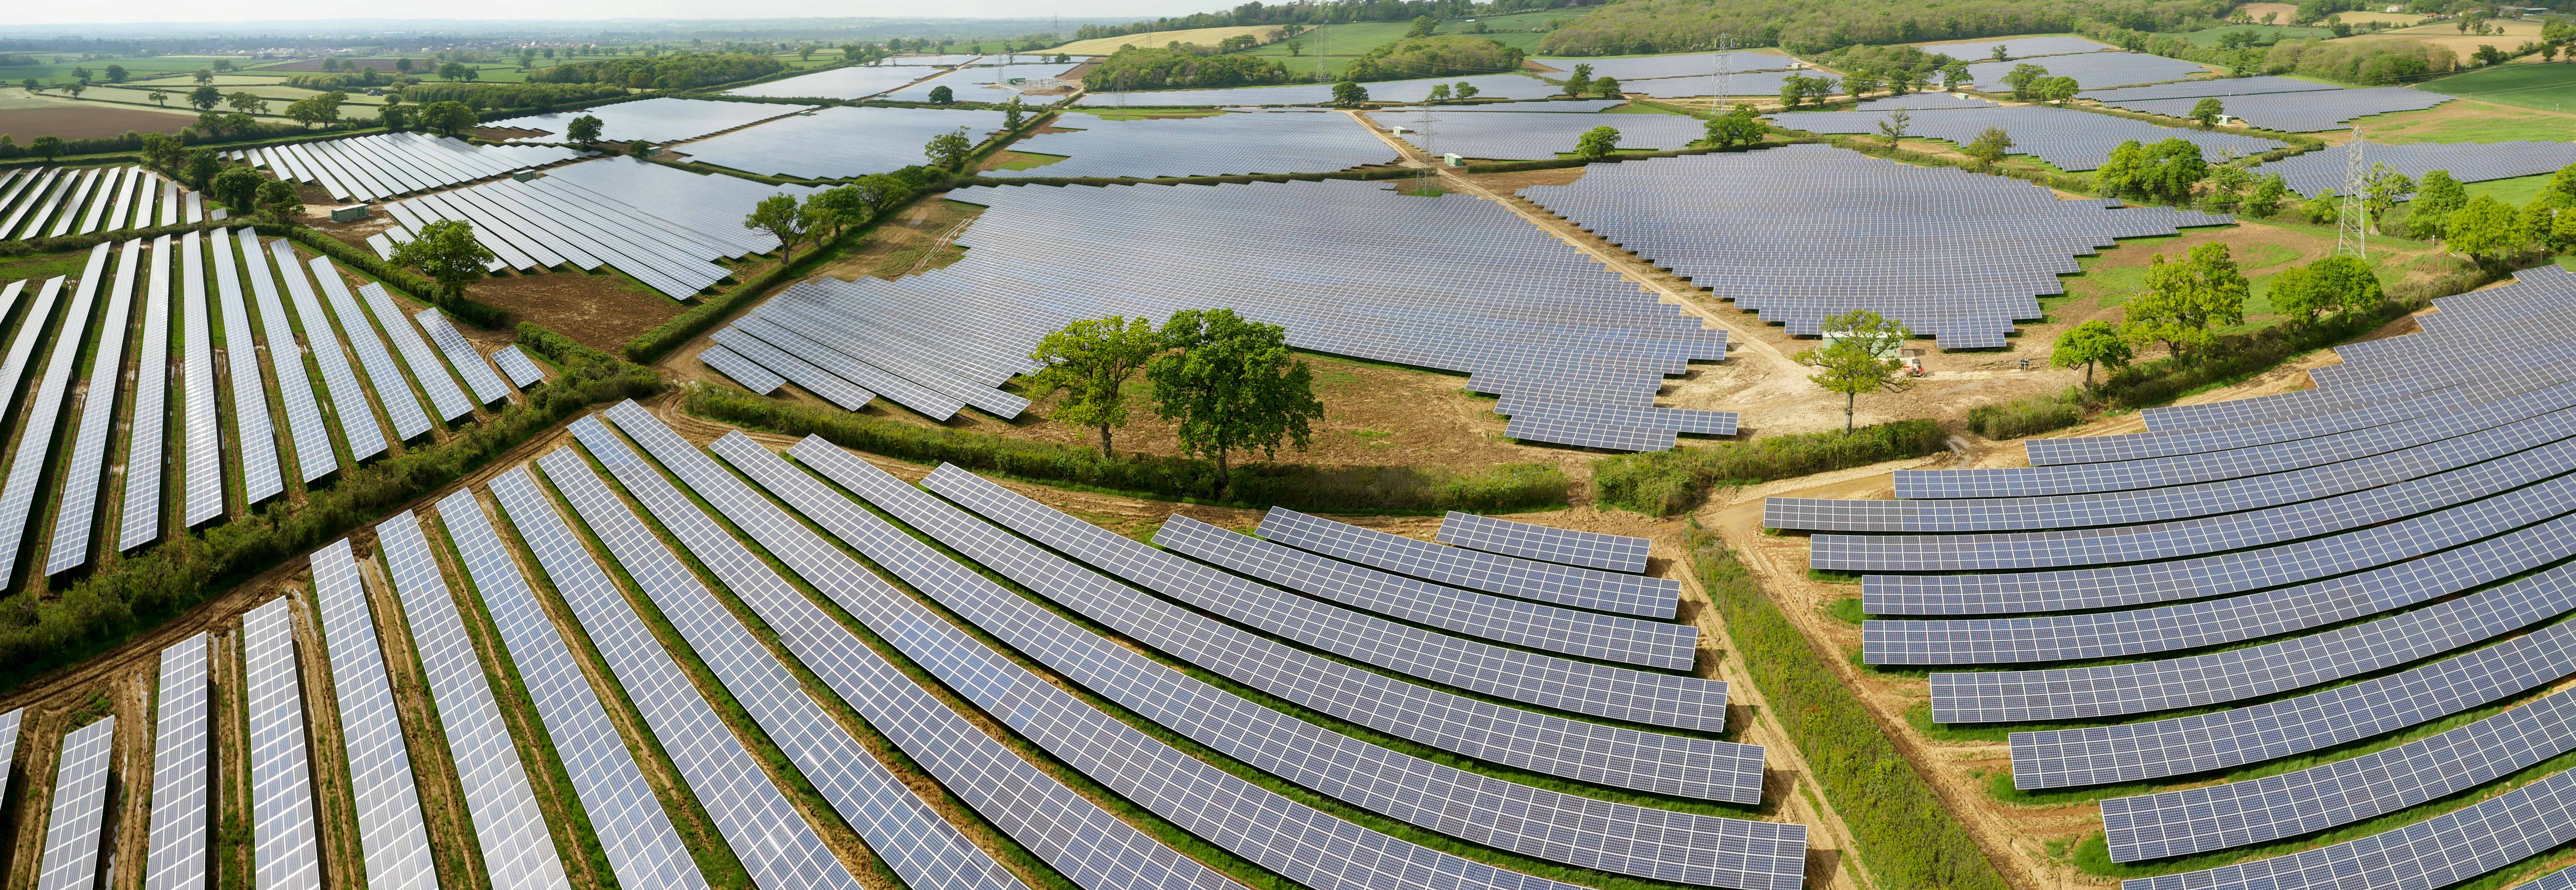 Goldbeck Solar veräußert 50-MW-Solarfarm in Sandridge